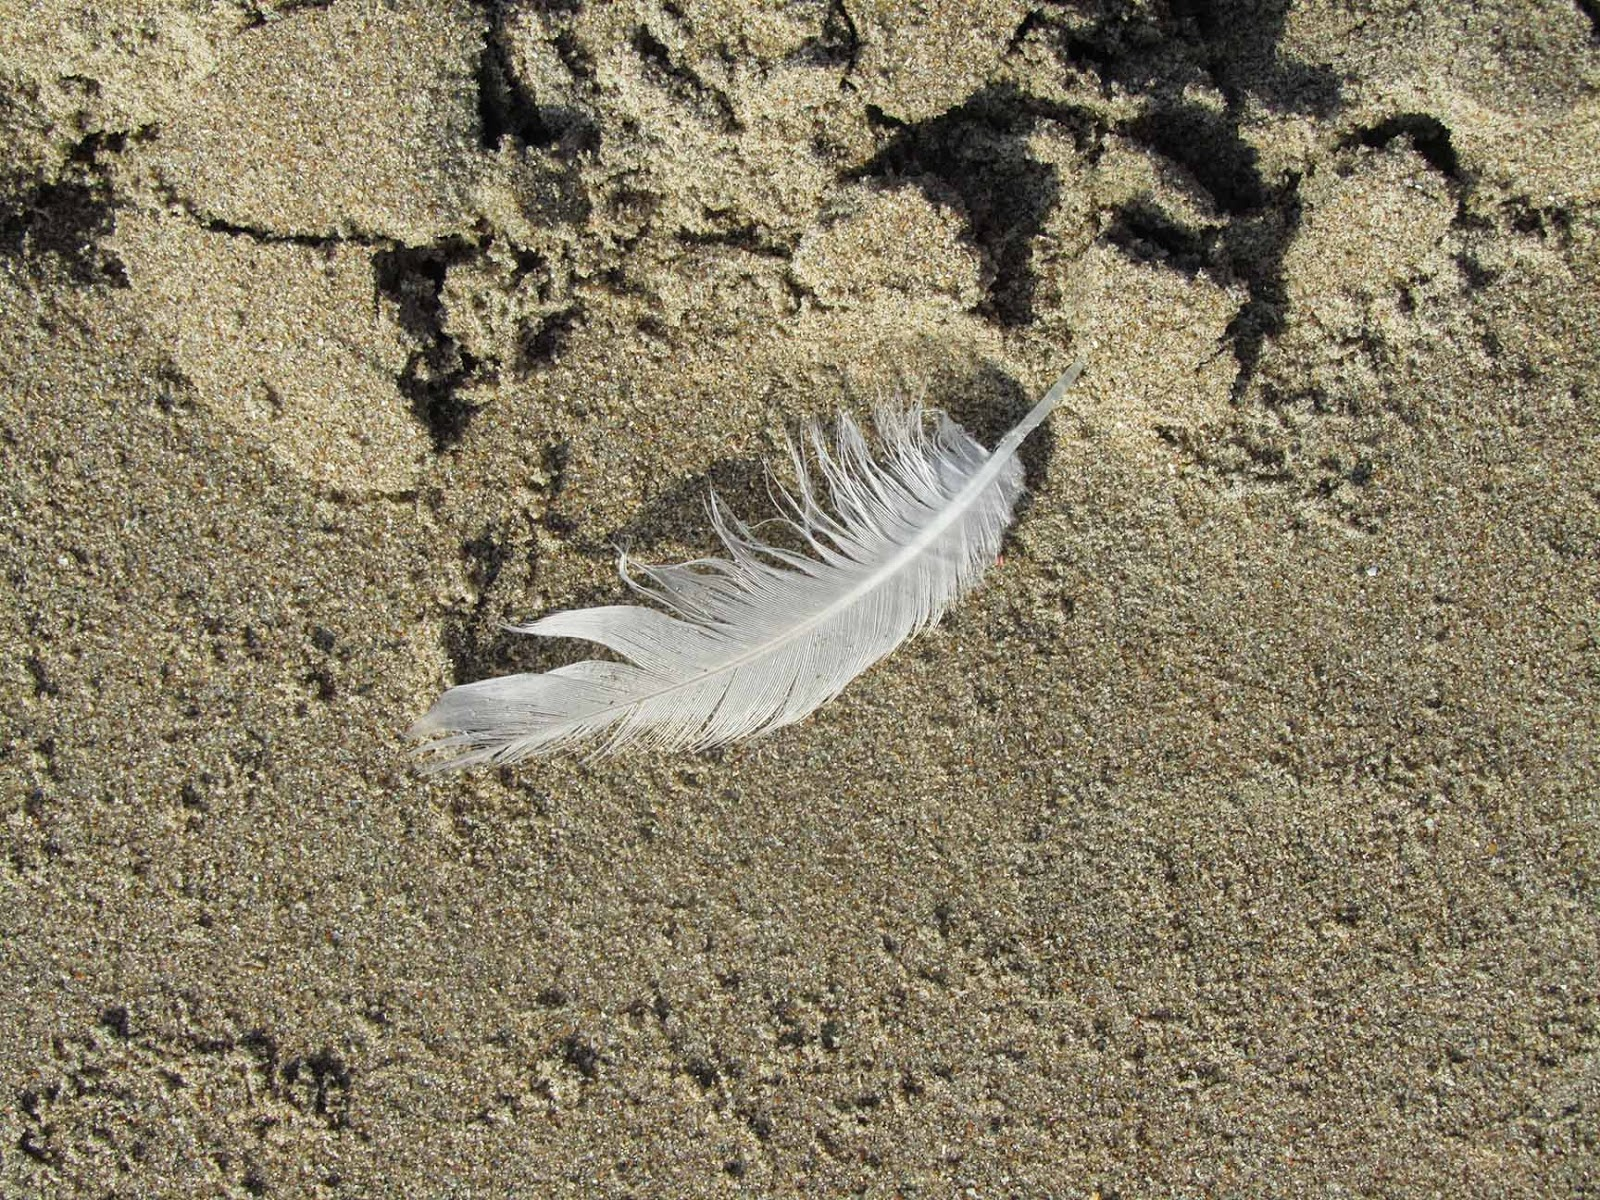 feather II in the sand